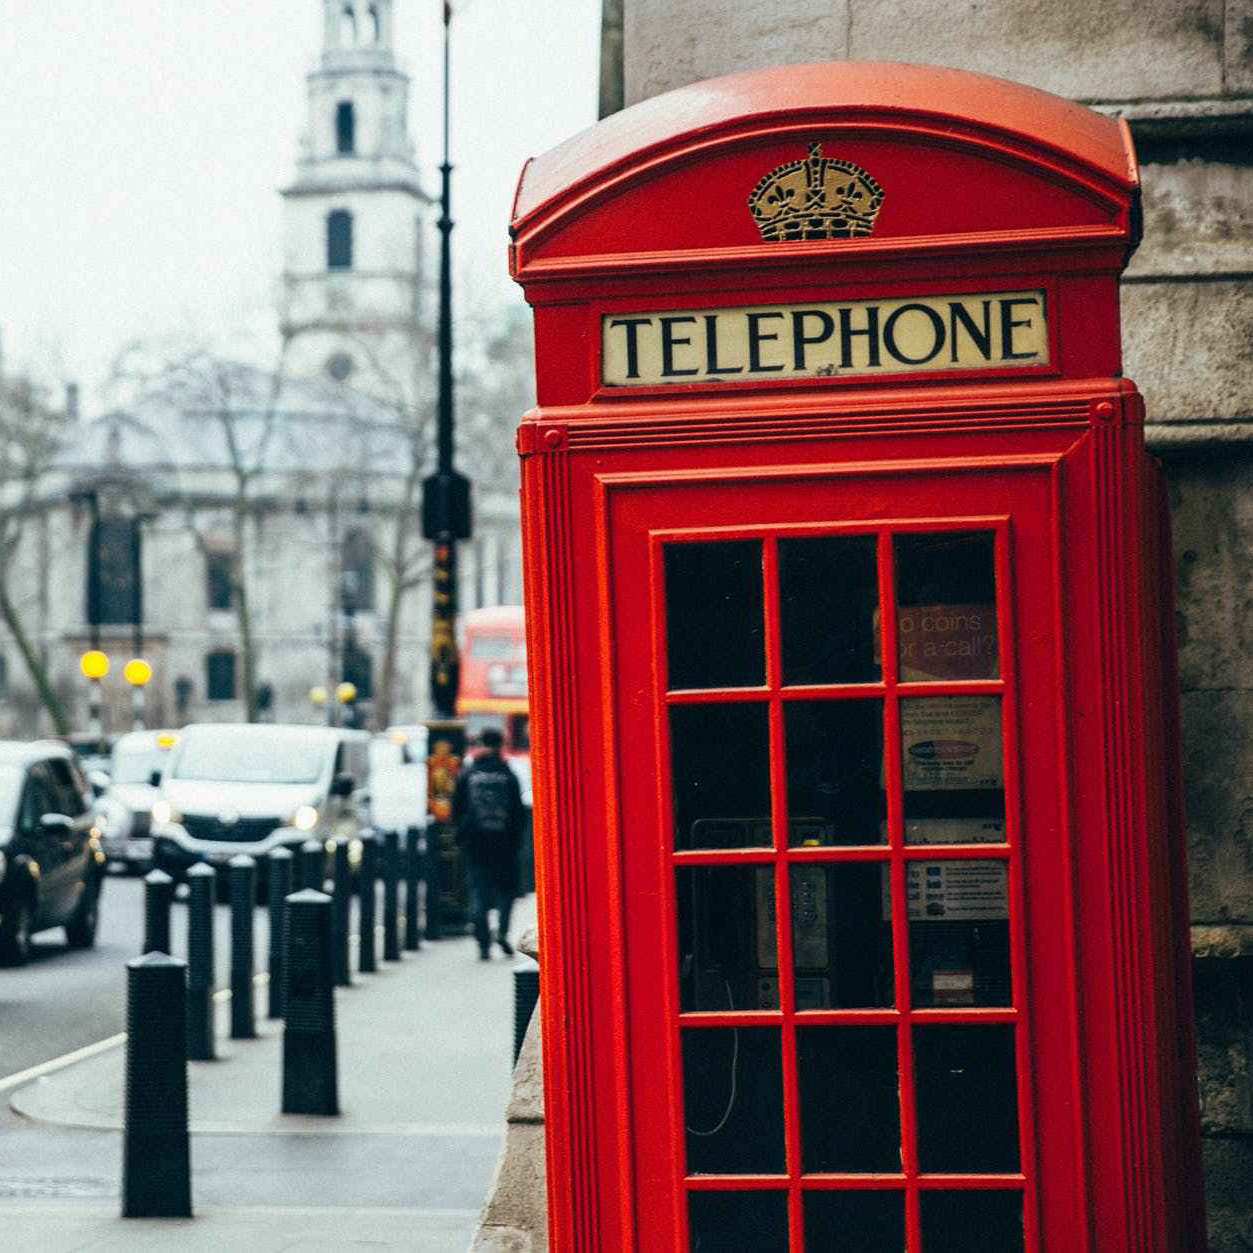 Red London Telephone box on a city street